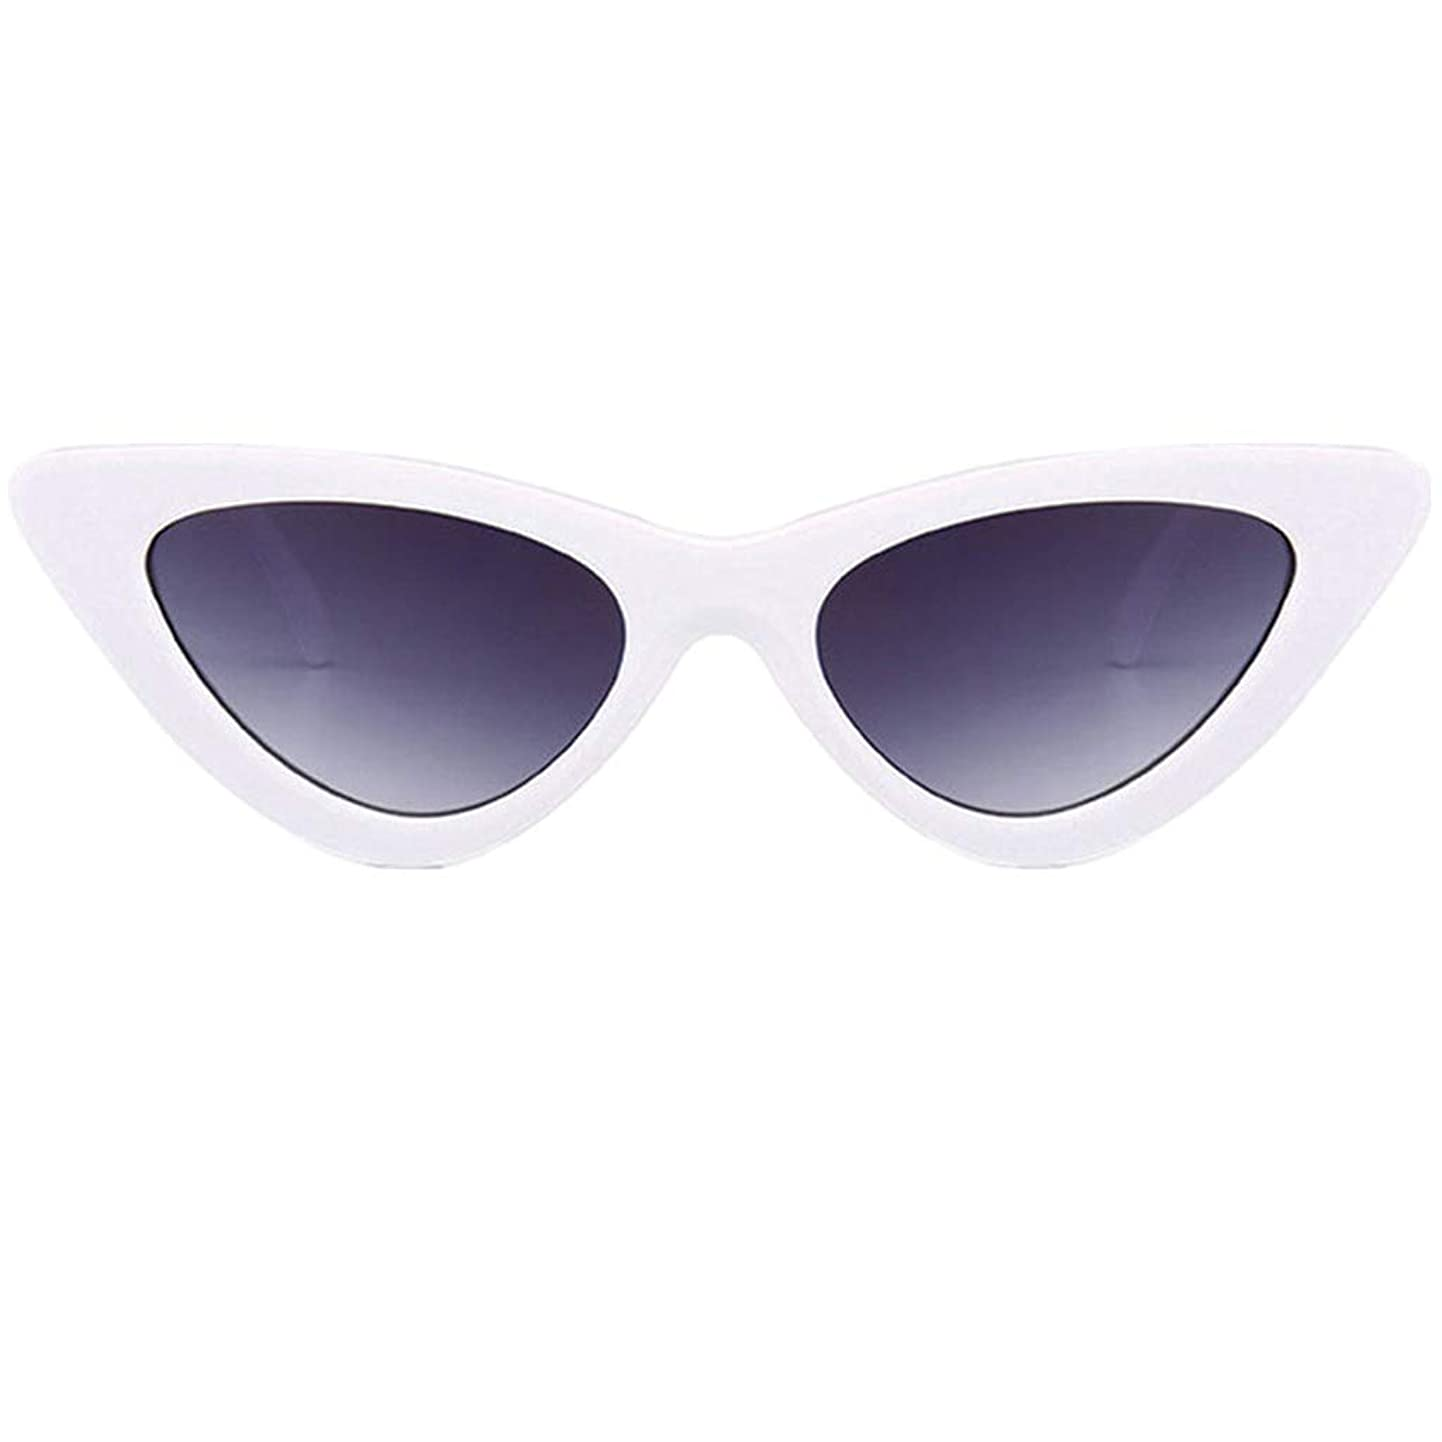 Tantisy ??? Retro Vintage Cateye Sunglasses for Women Clout Goggles Plastic Frame Glasses jwopocsimrv2